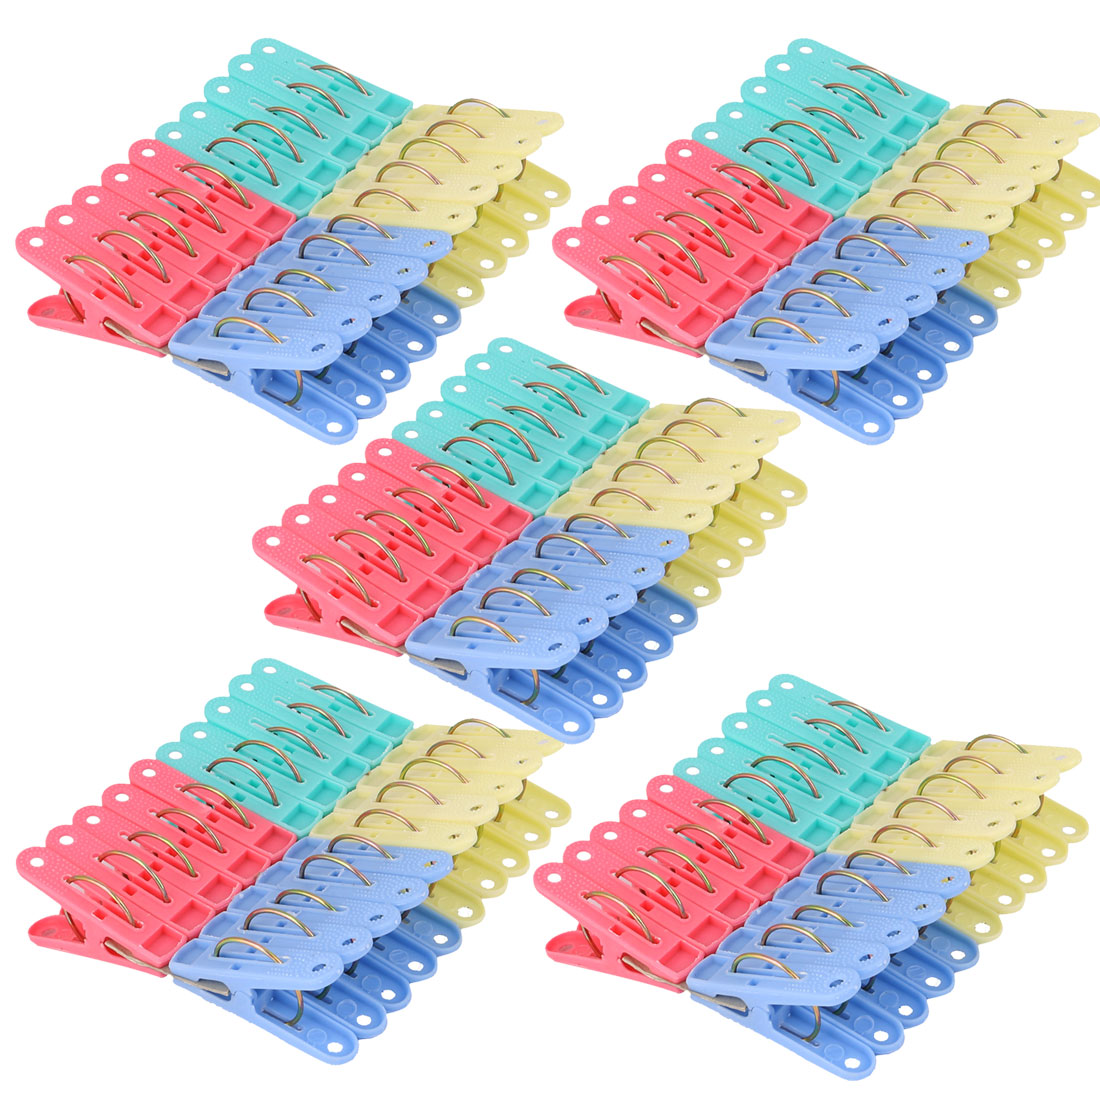 Household Laundry Socks Clothes Drying Clamp Hanging Peg Clip Clothespins 160pcs